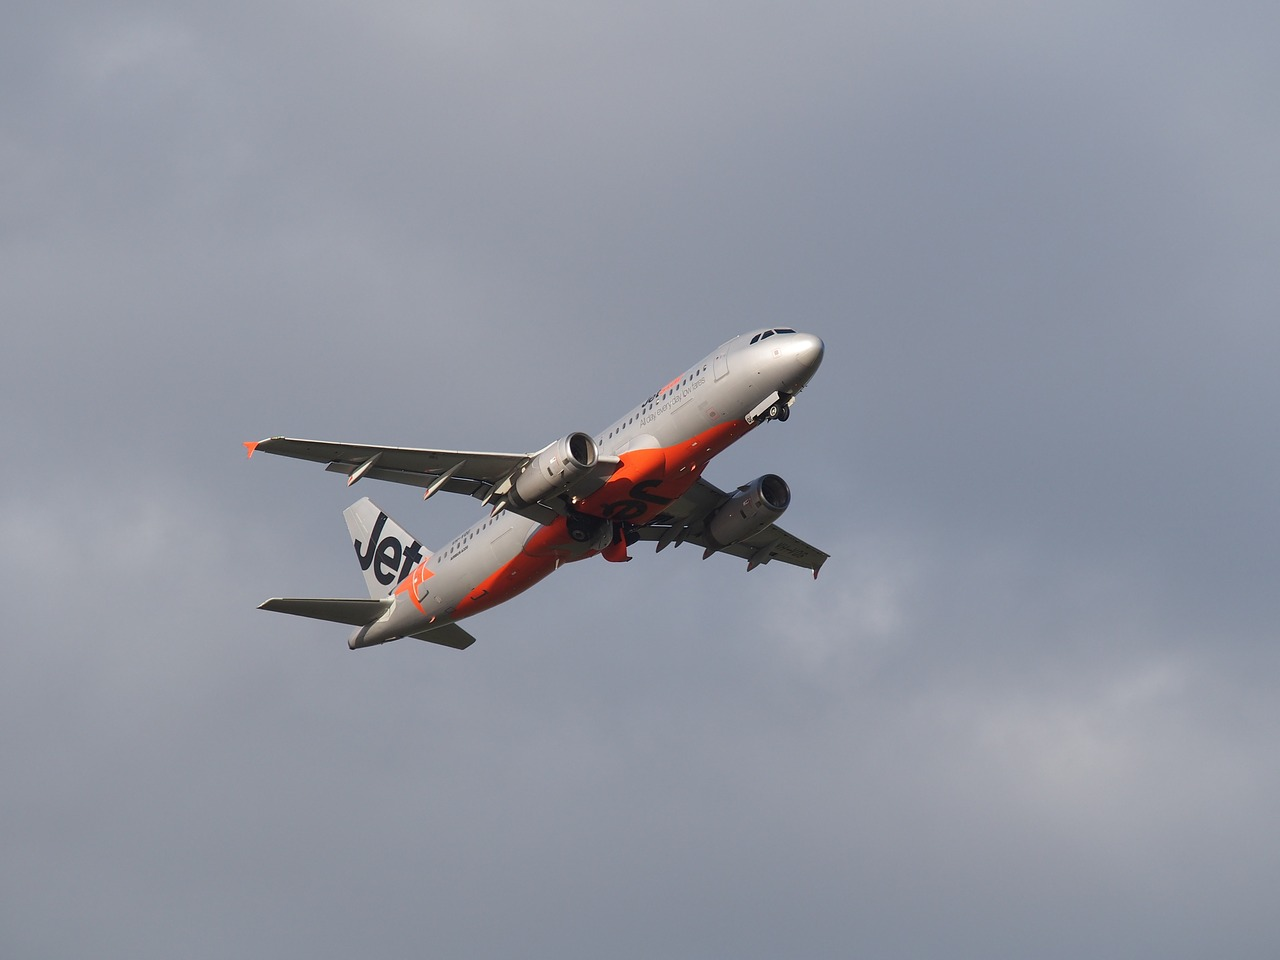 Jetstar flight taking off - The Complete Guide to Getting Around Australia - The Trusted Traveller